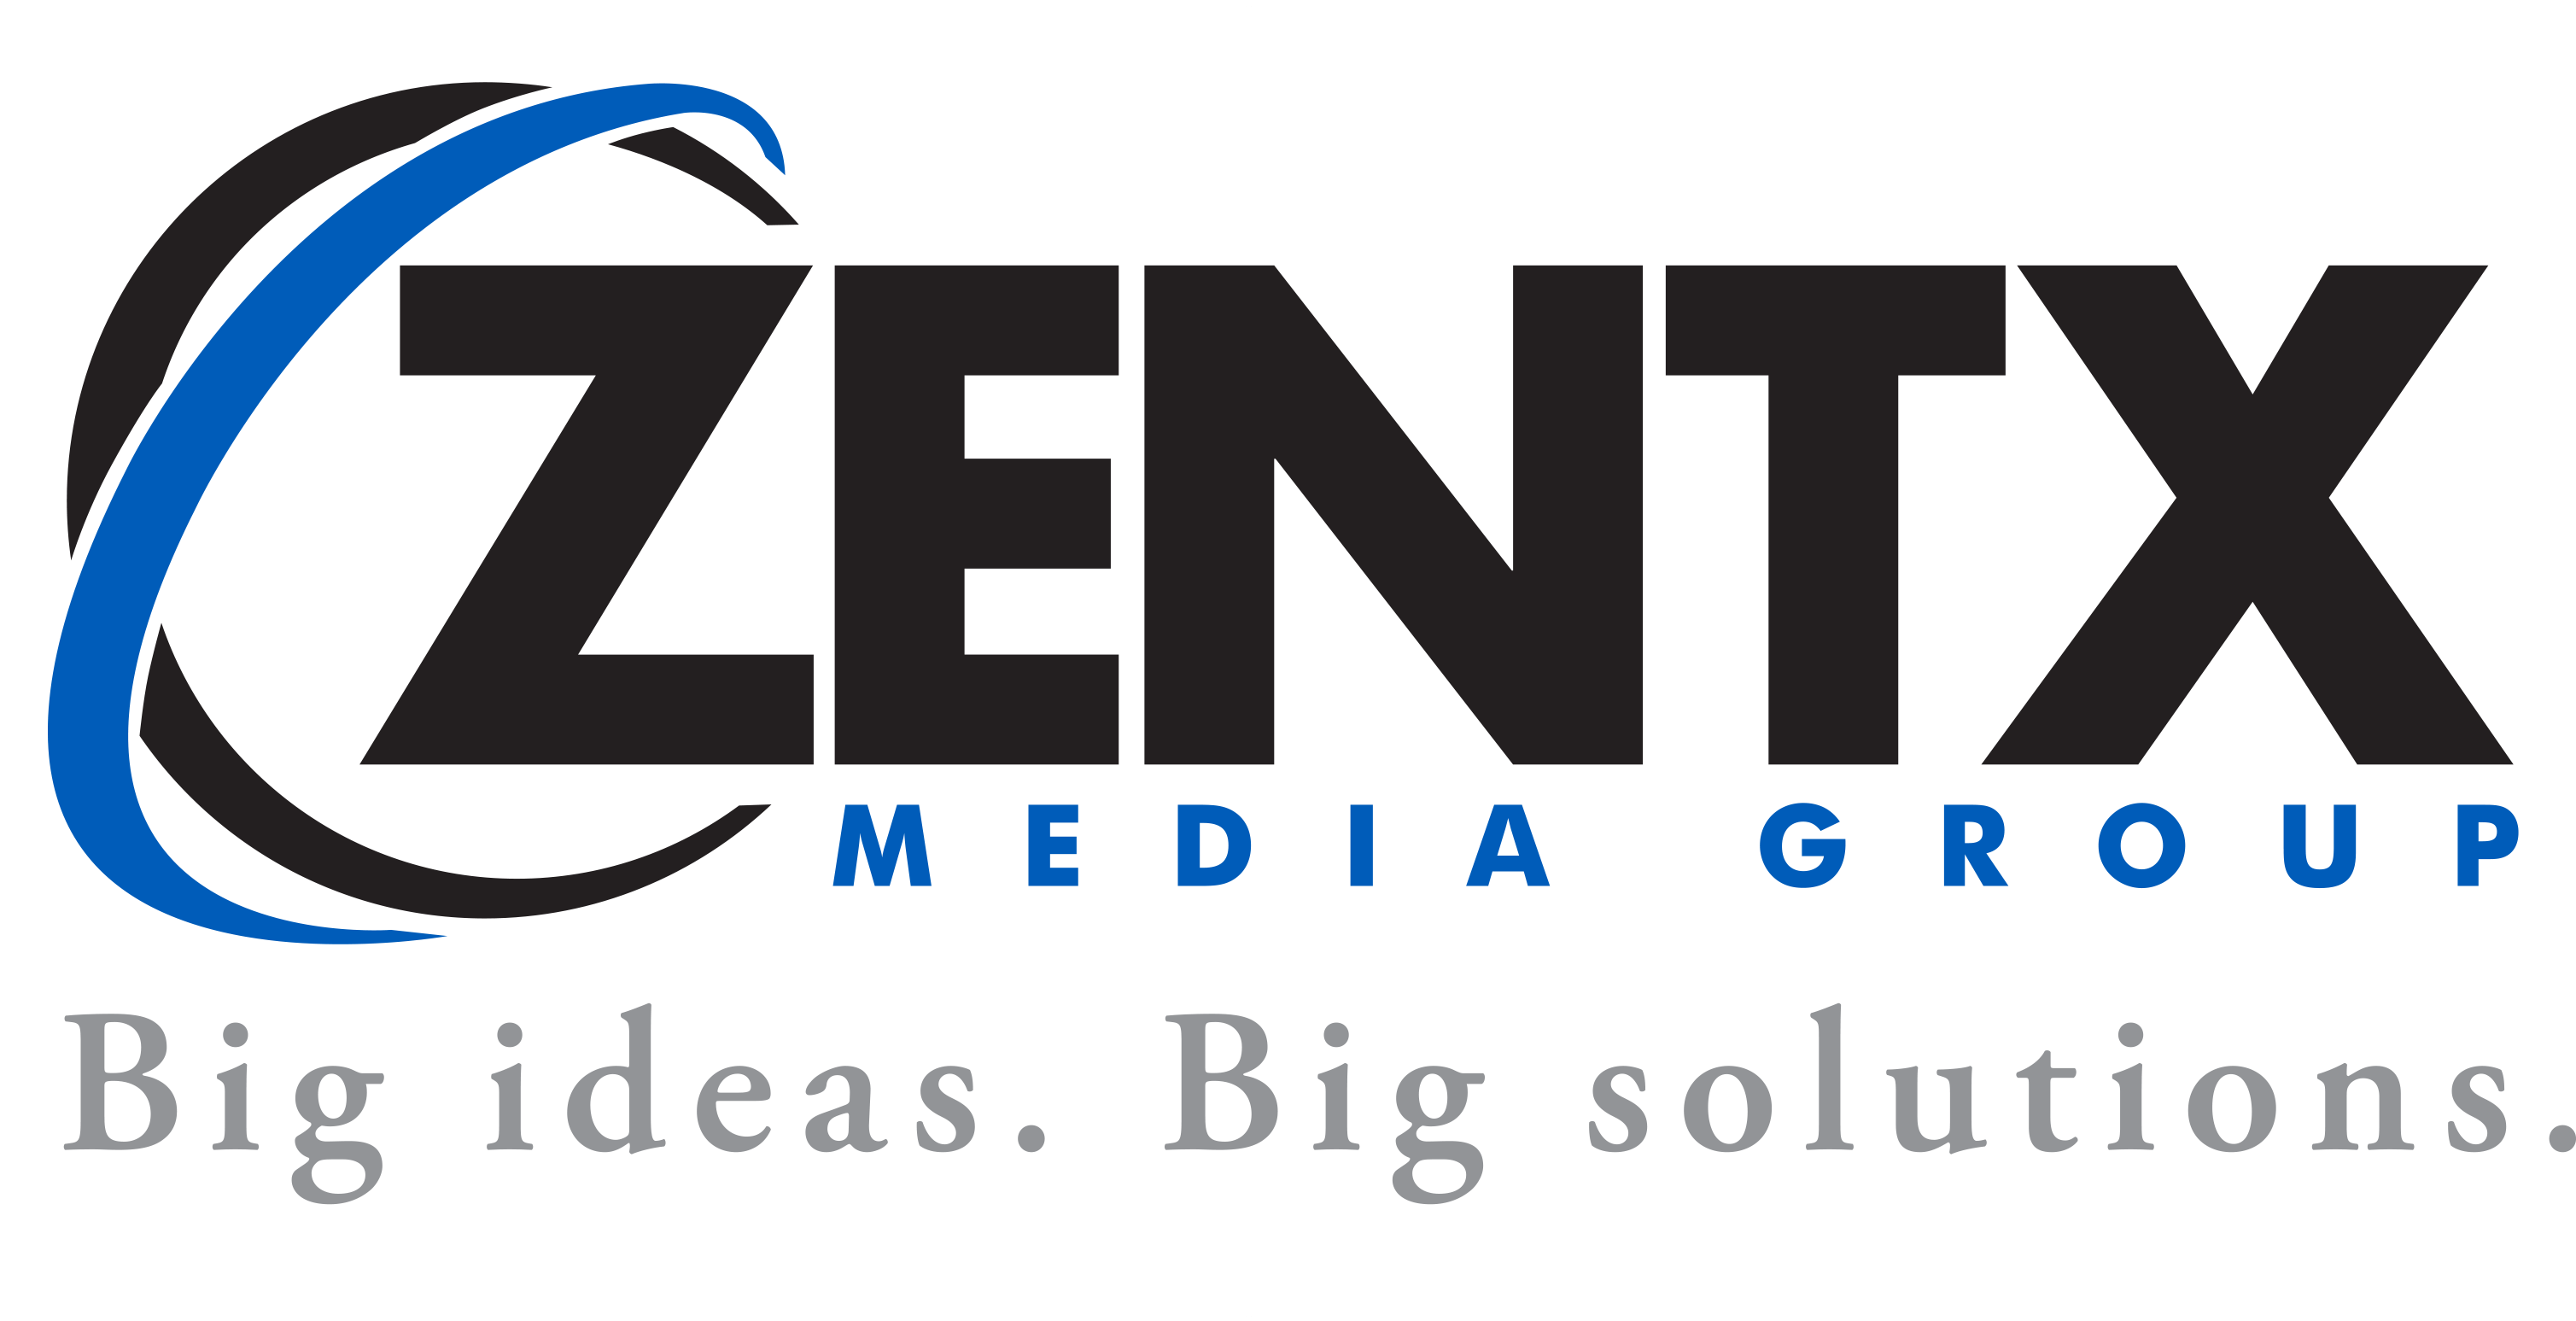 ZENTX Media Group